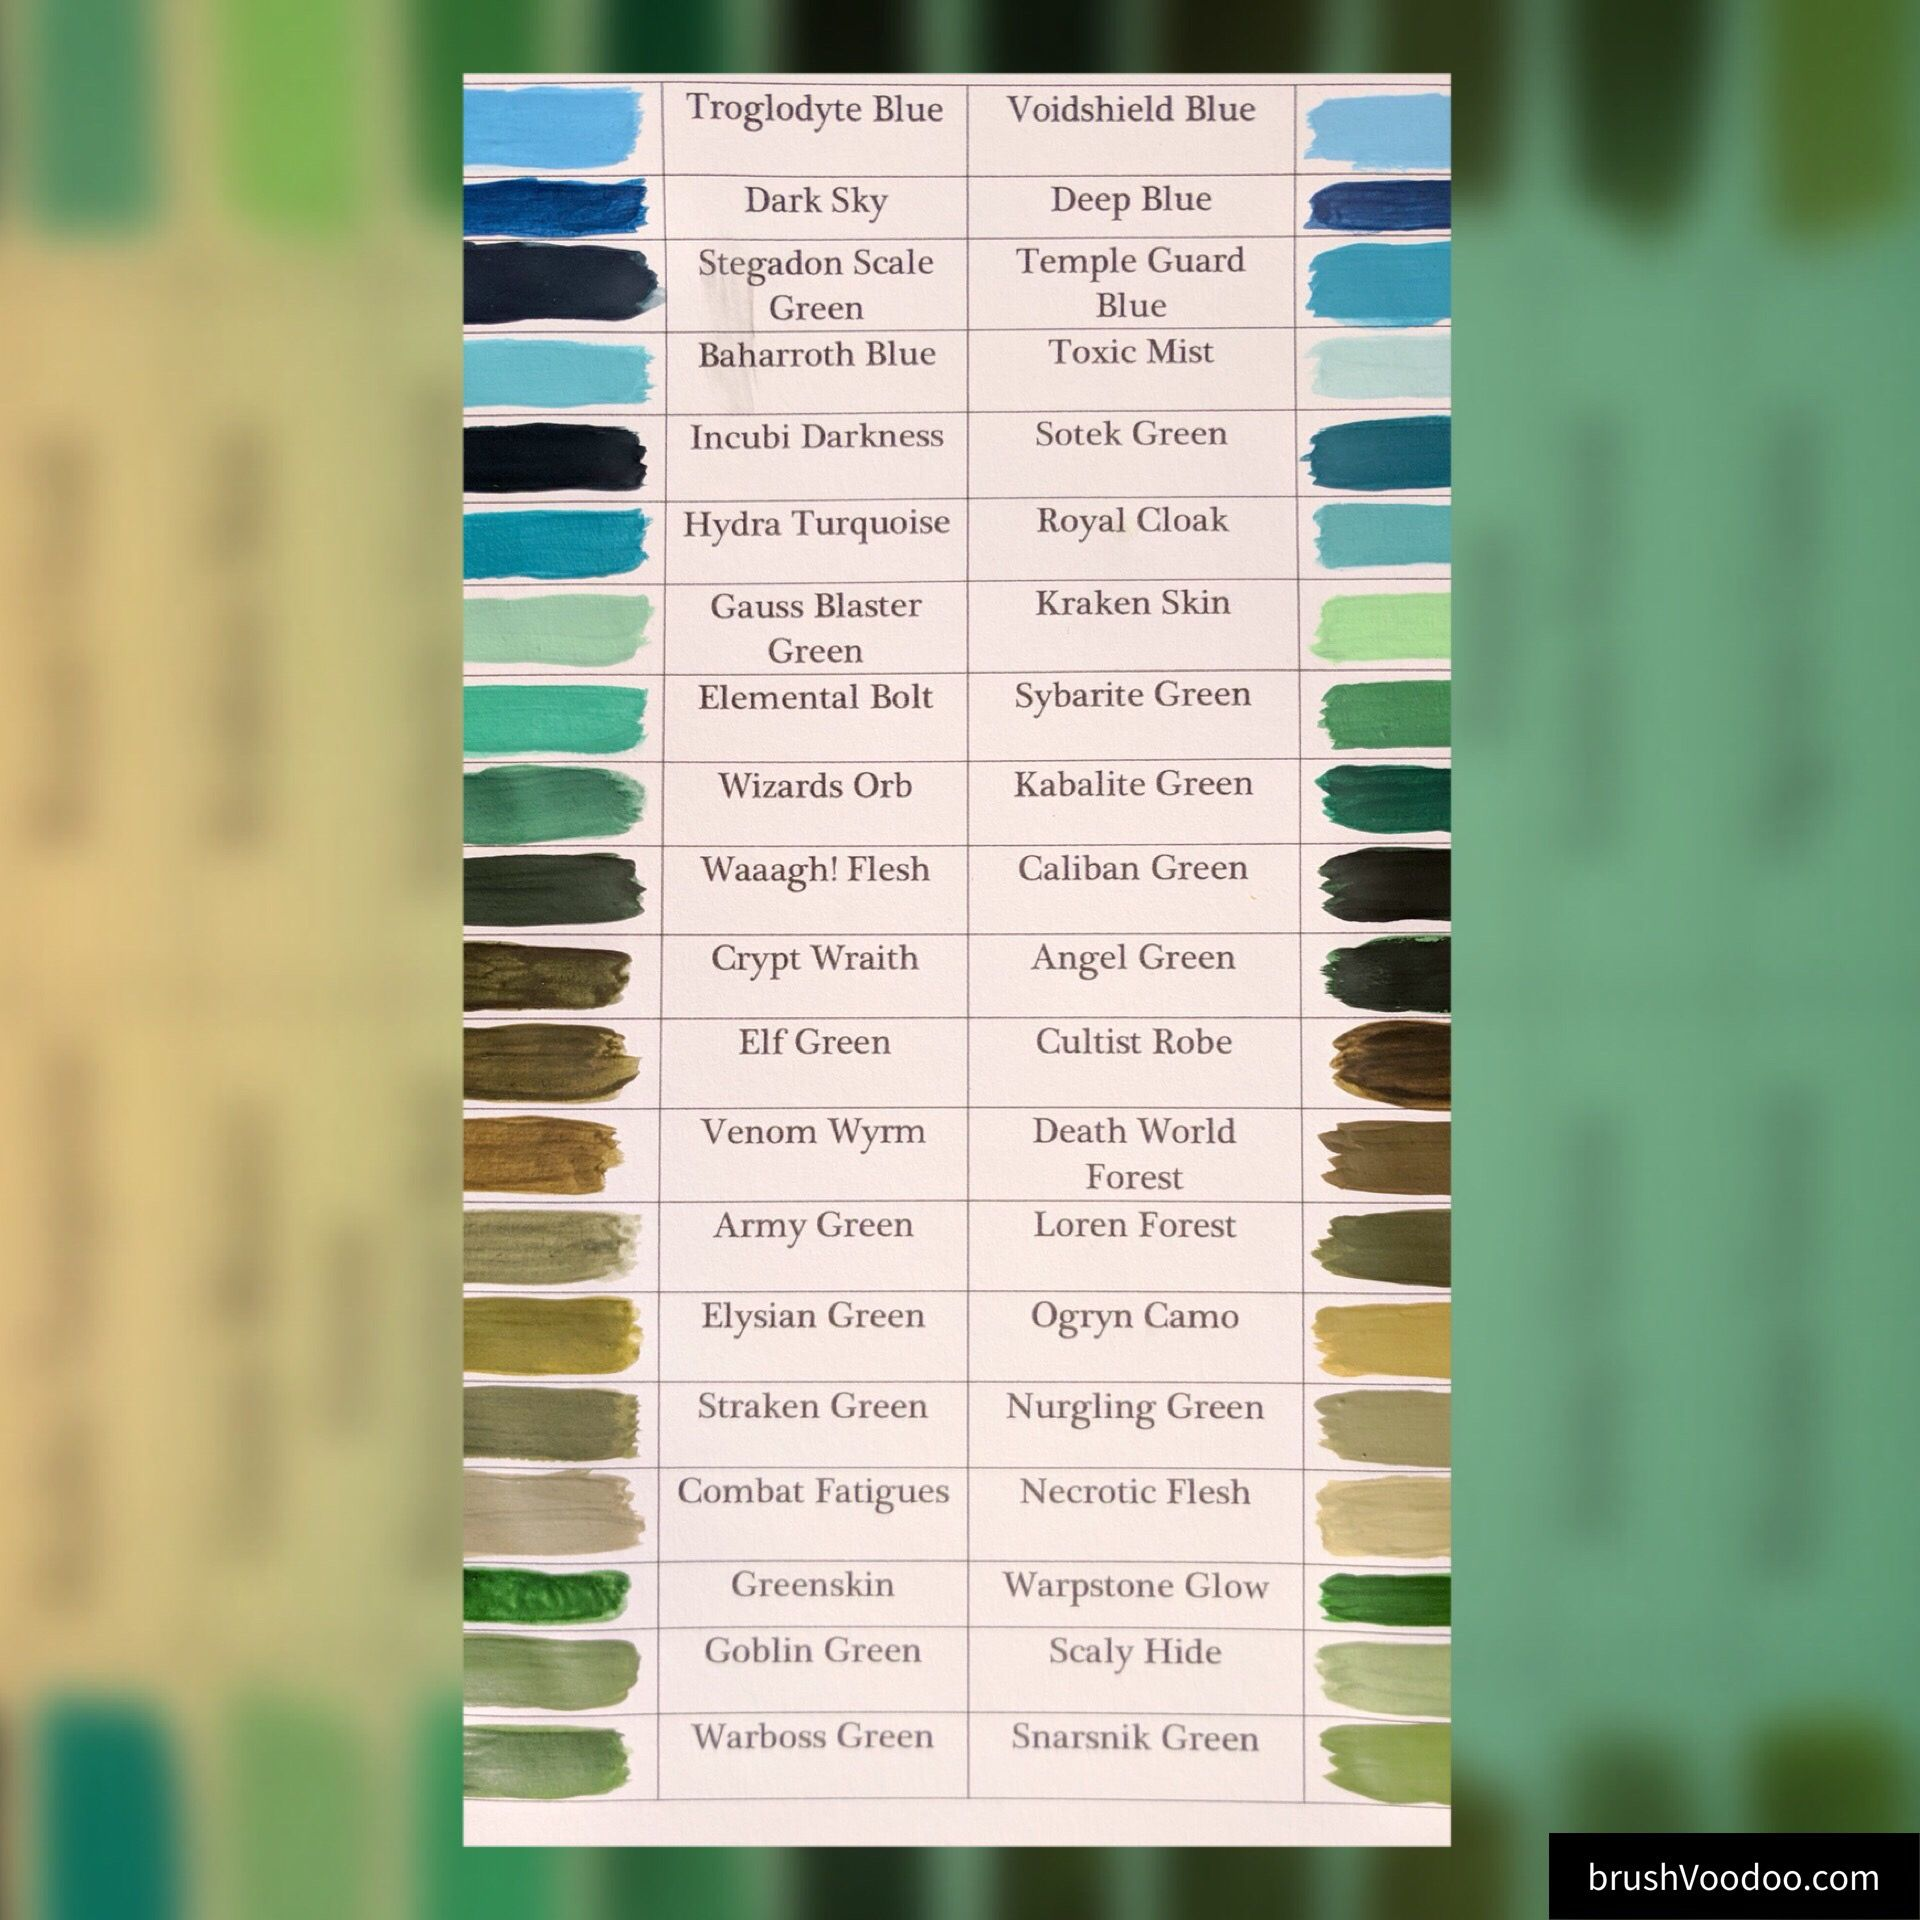 Paint Reference Chart For Citadel And Army Painter Acrylic Paints Created To Make Miniature Painting Colour Sc Paint Charts Miniature Painting Reference Chart